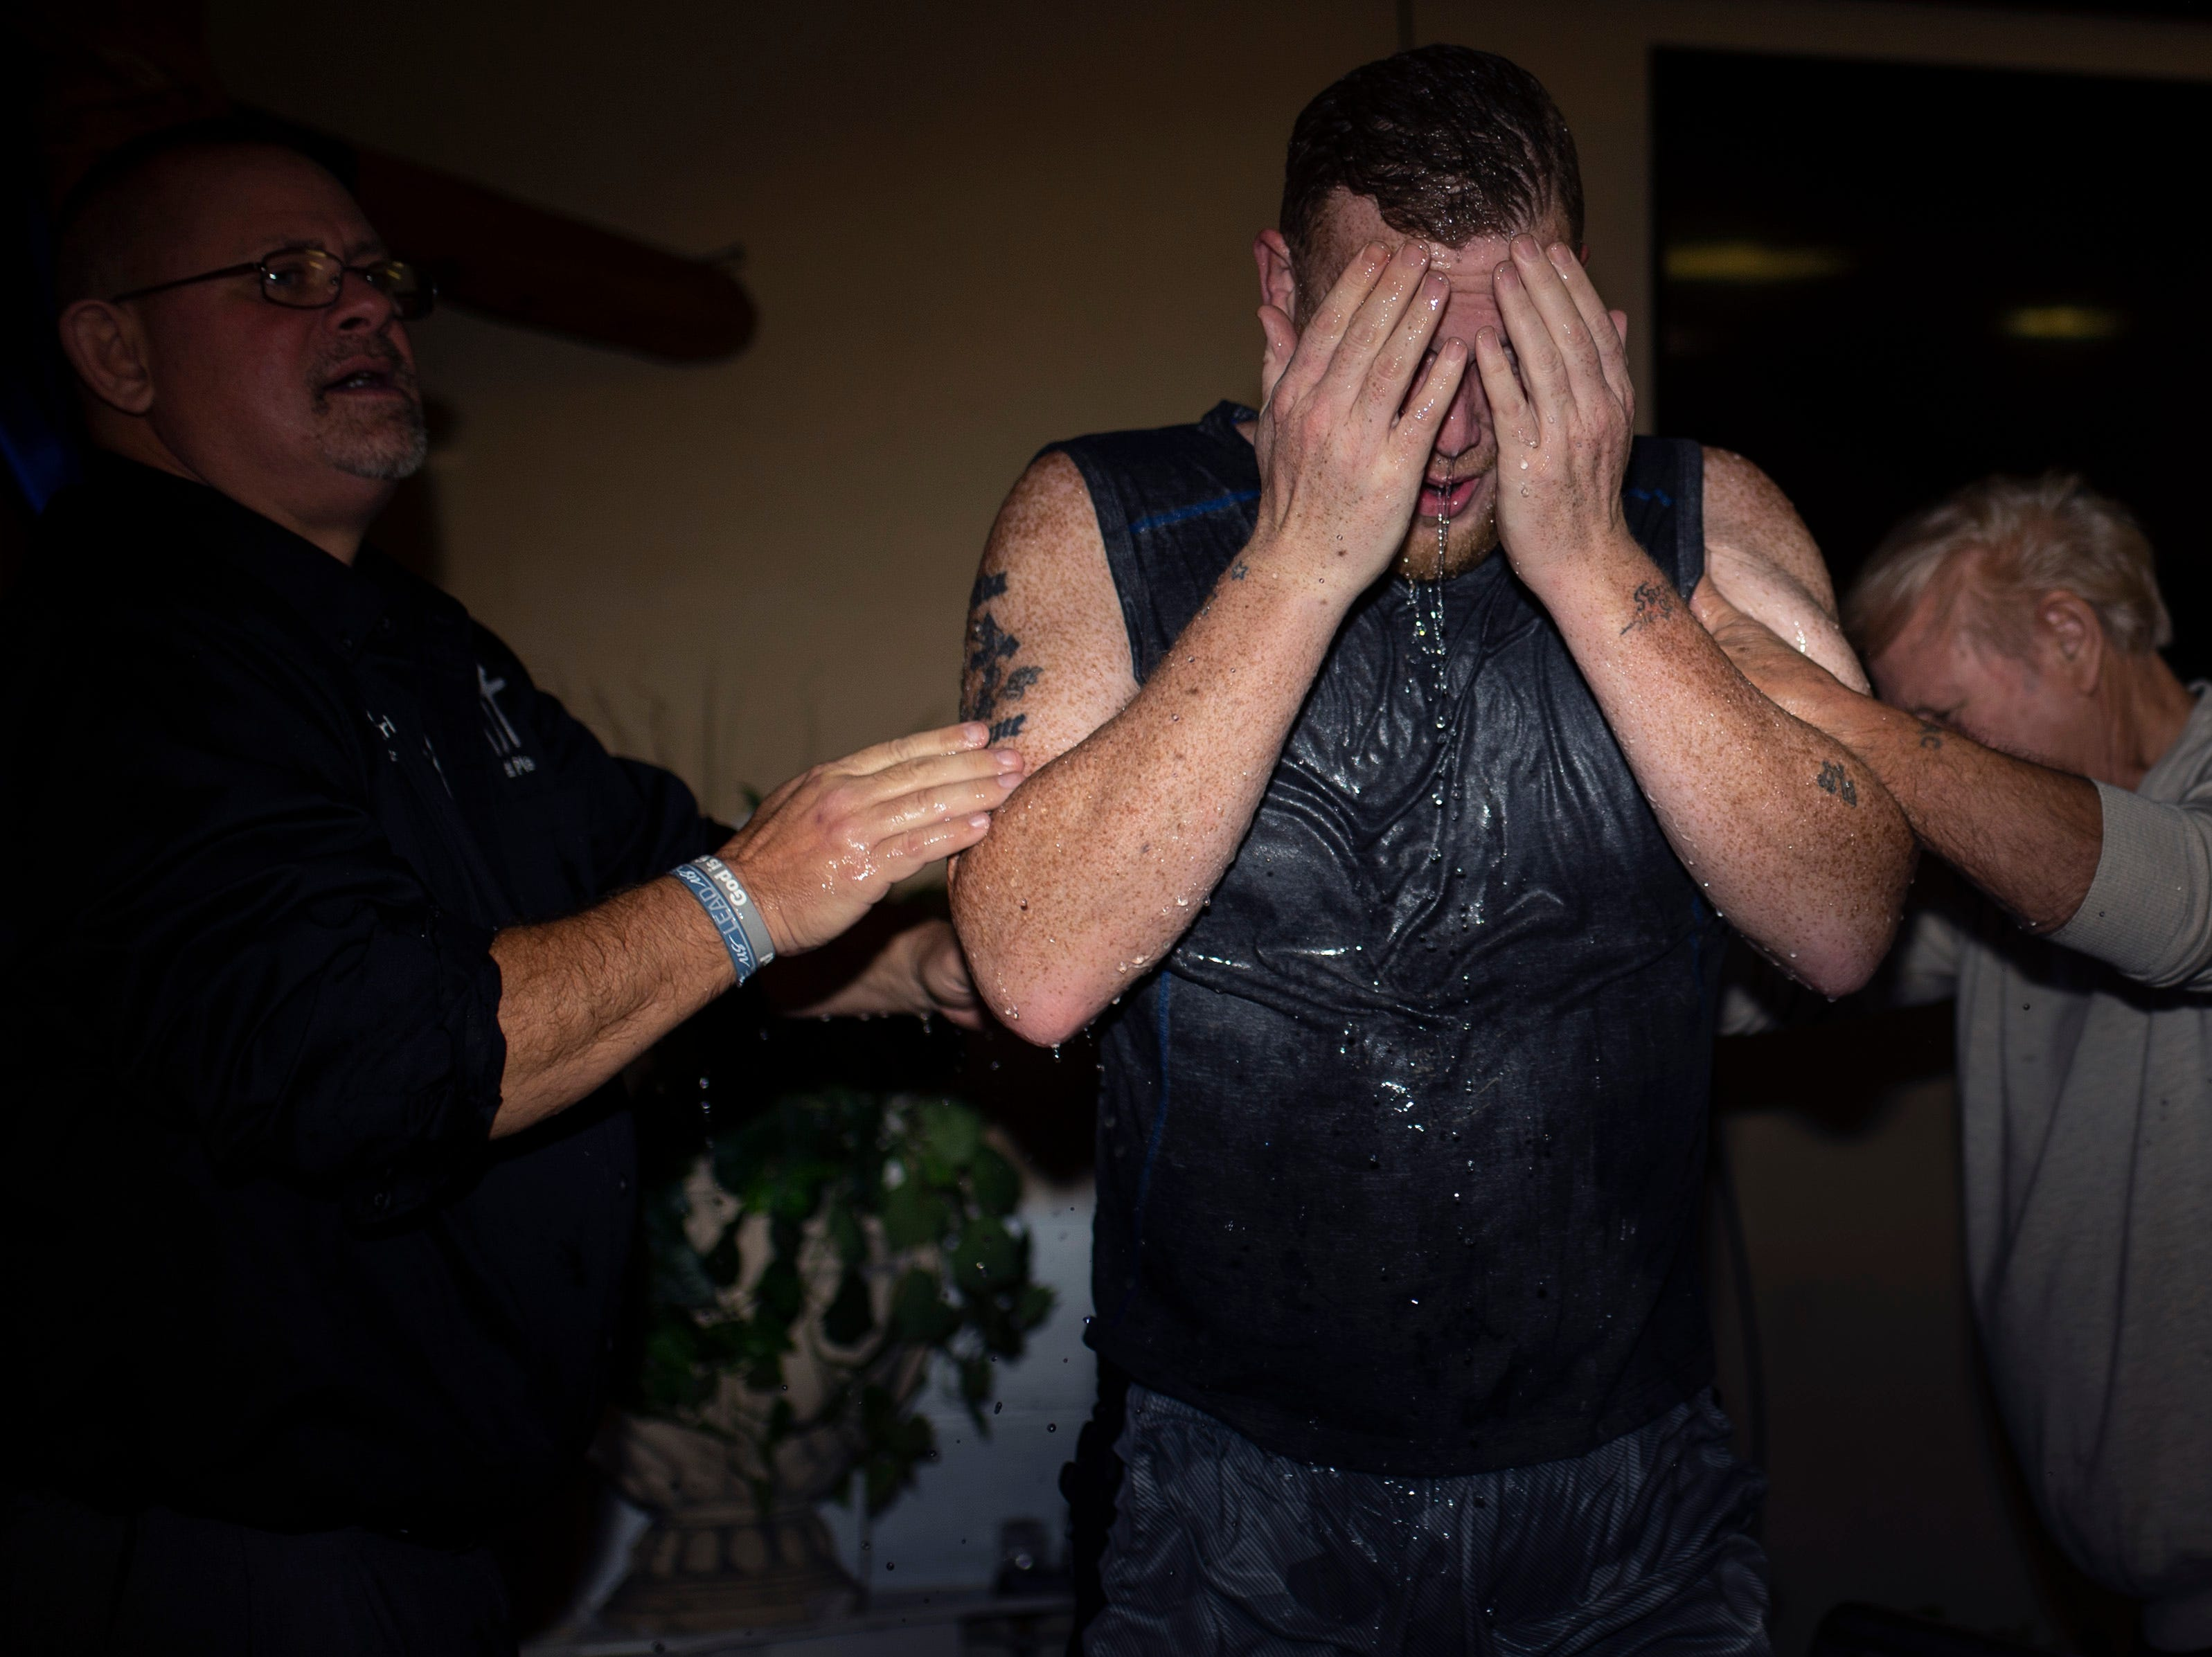 "Pastor and founder Kris Hunley, left, looks on as Bobby Sizemore emerges from the water after his baptism at Todd's Place Transitional Housing in Seymour, Indiana. ""If the guys like me that helped tear up Austin will go back and change their life and help put it back together, we'll have it fixed in no time,"" Hunley said. Dec. 2, 2018"